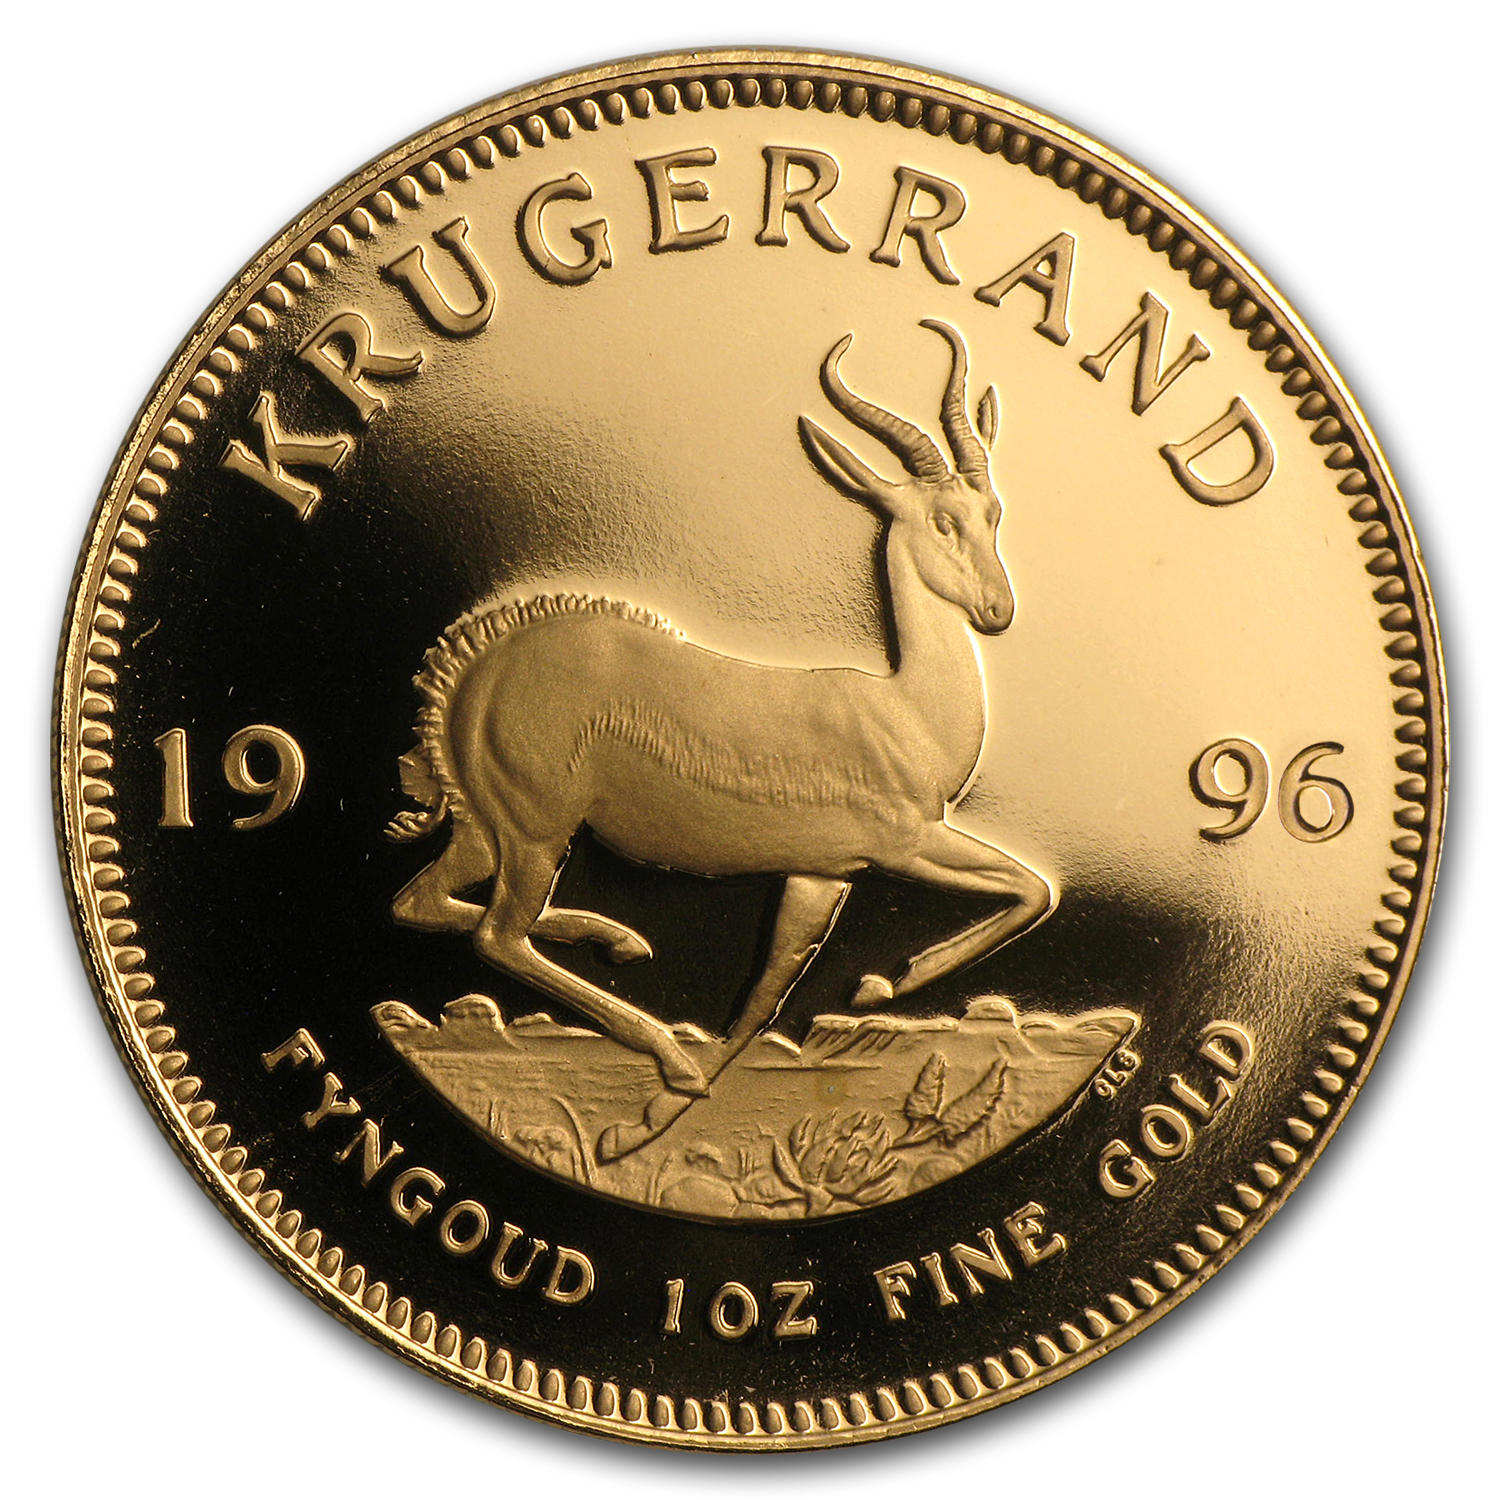 1996 South Africa 1 oz Gold Krugerrand